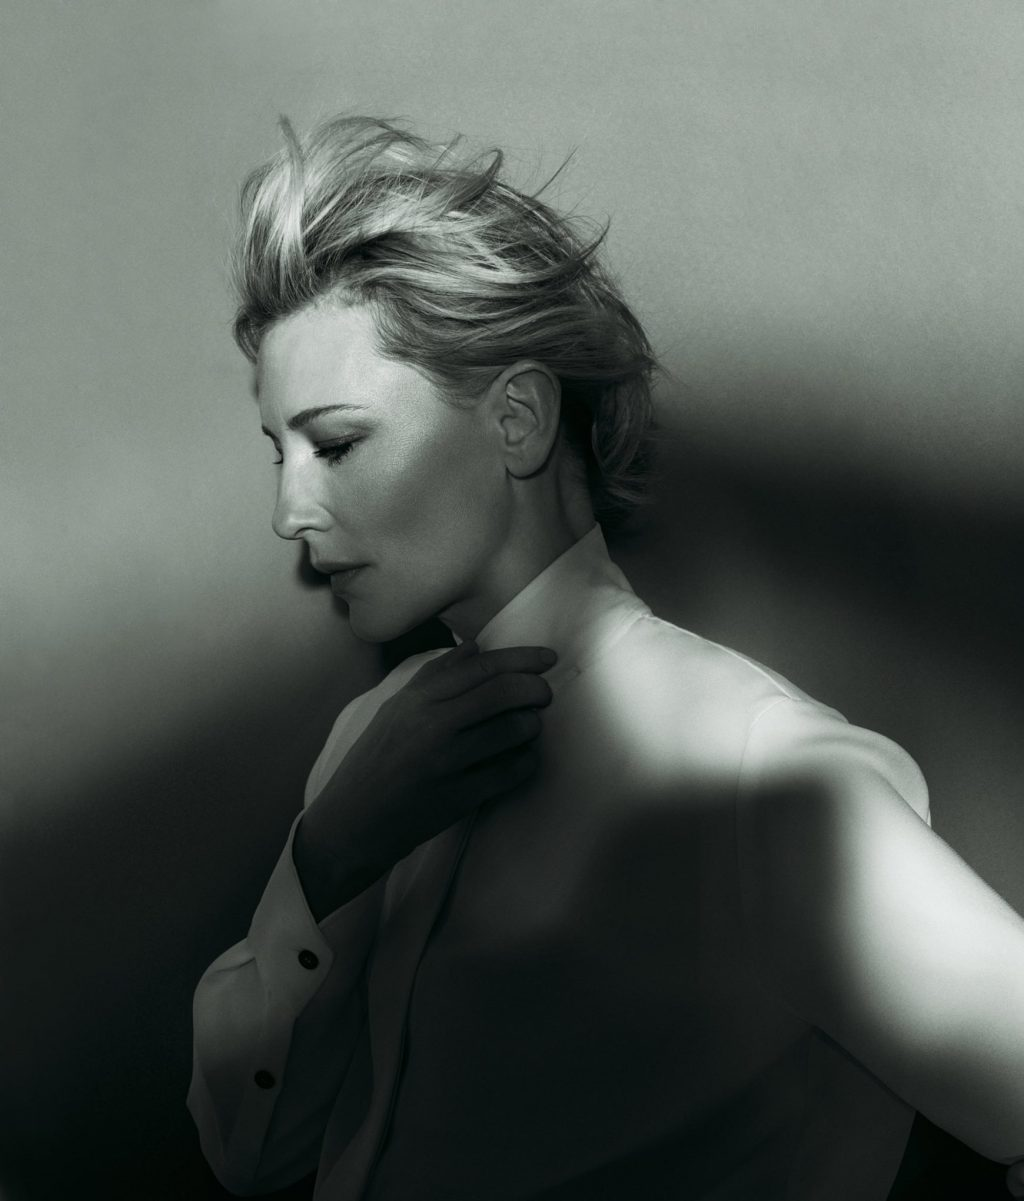 #WCW: Oscar-Winning Actress, Style Icon, and Humanitarian Cate Blanchett